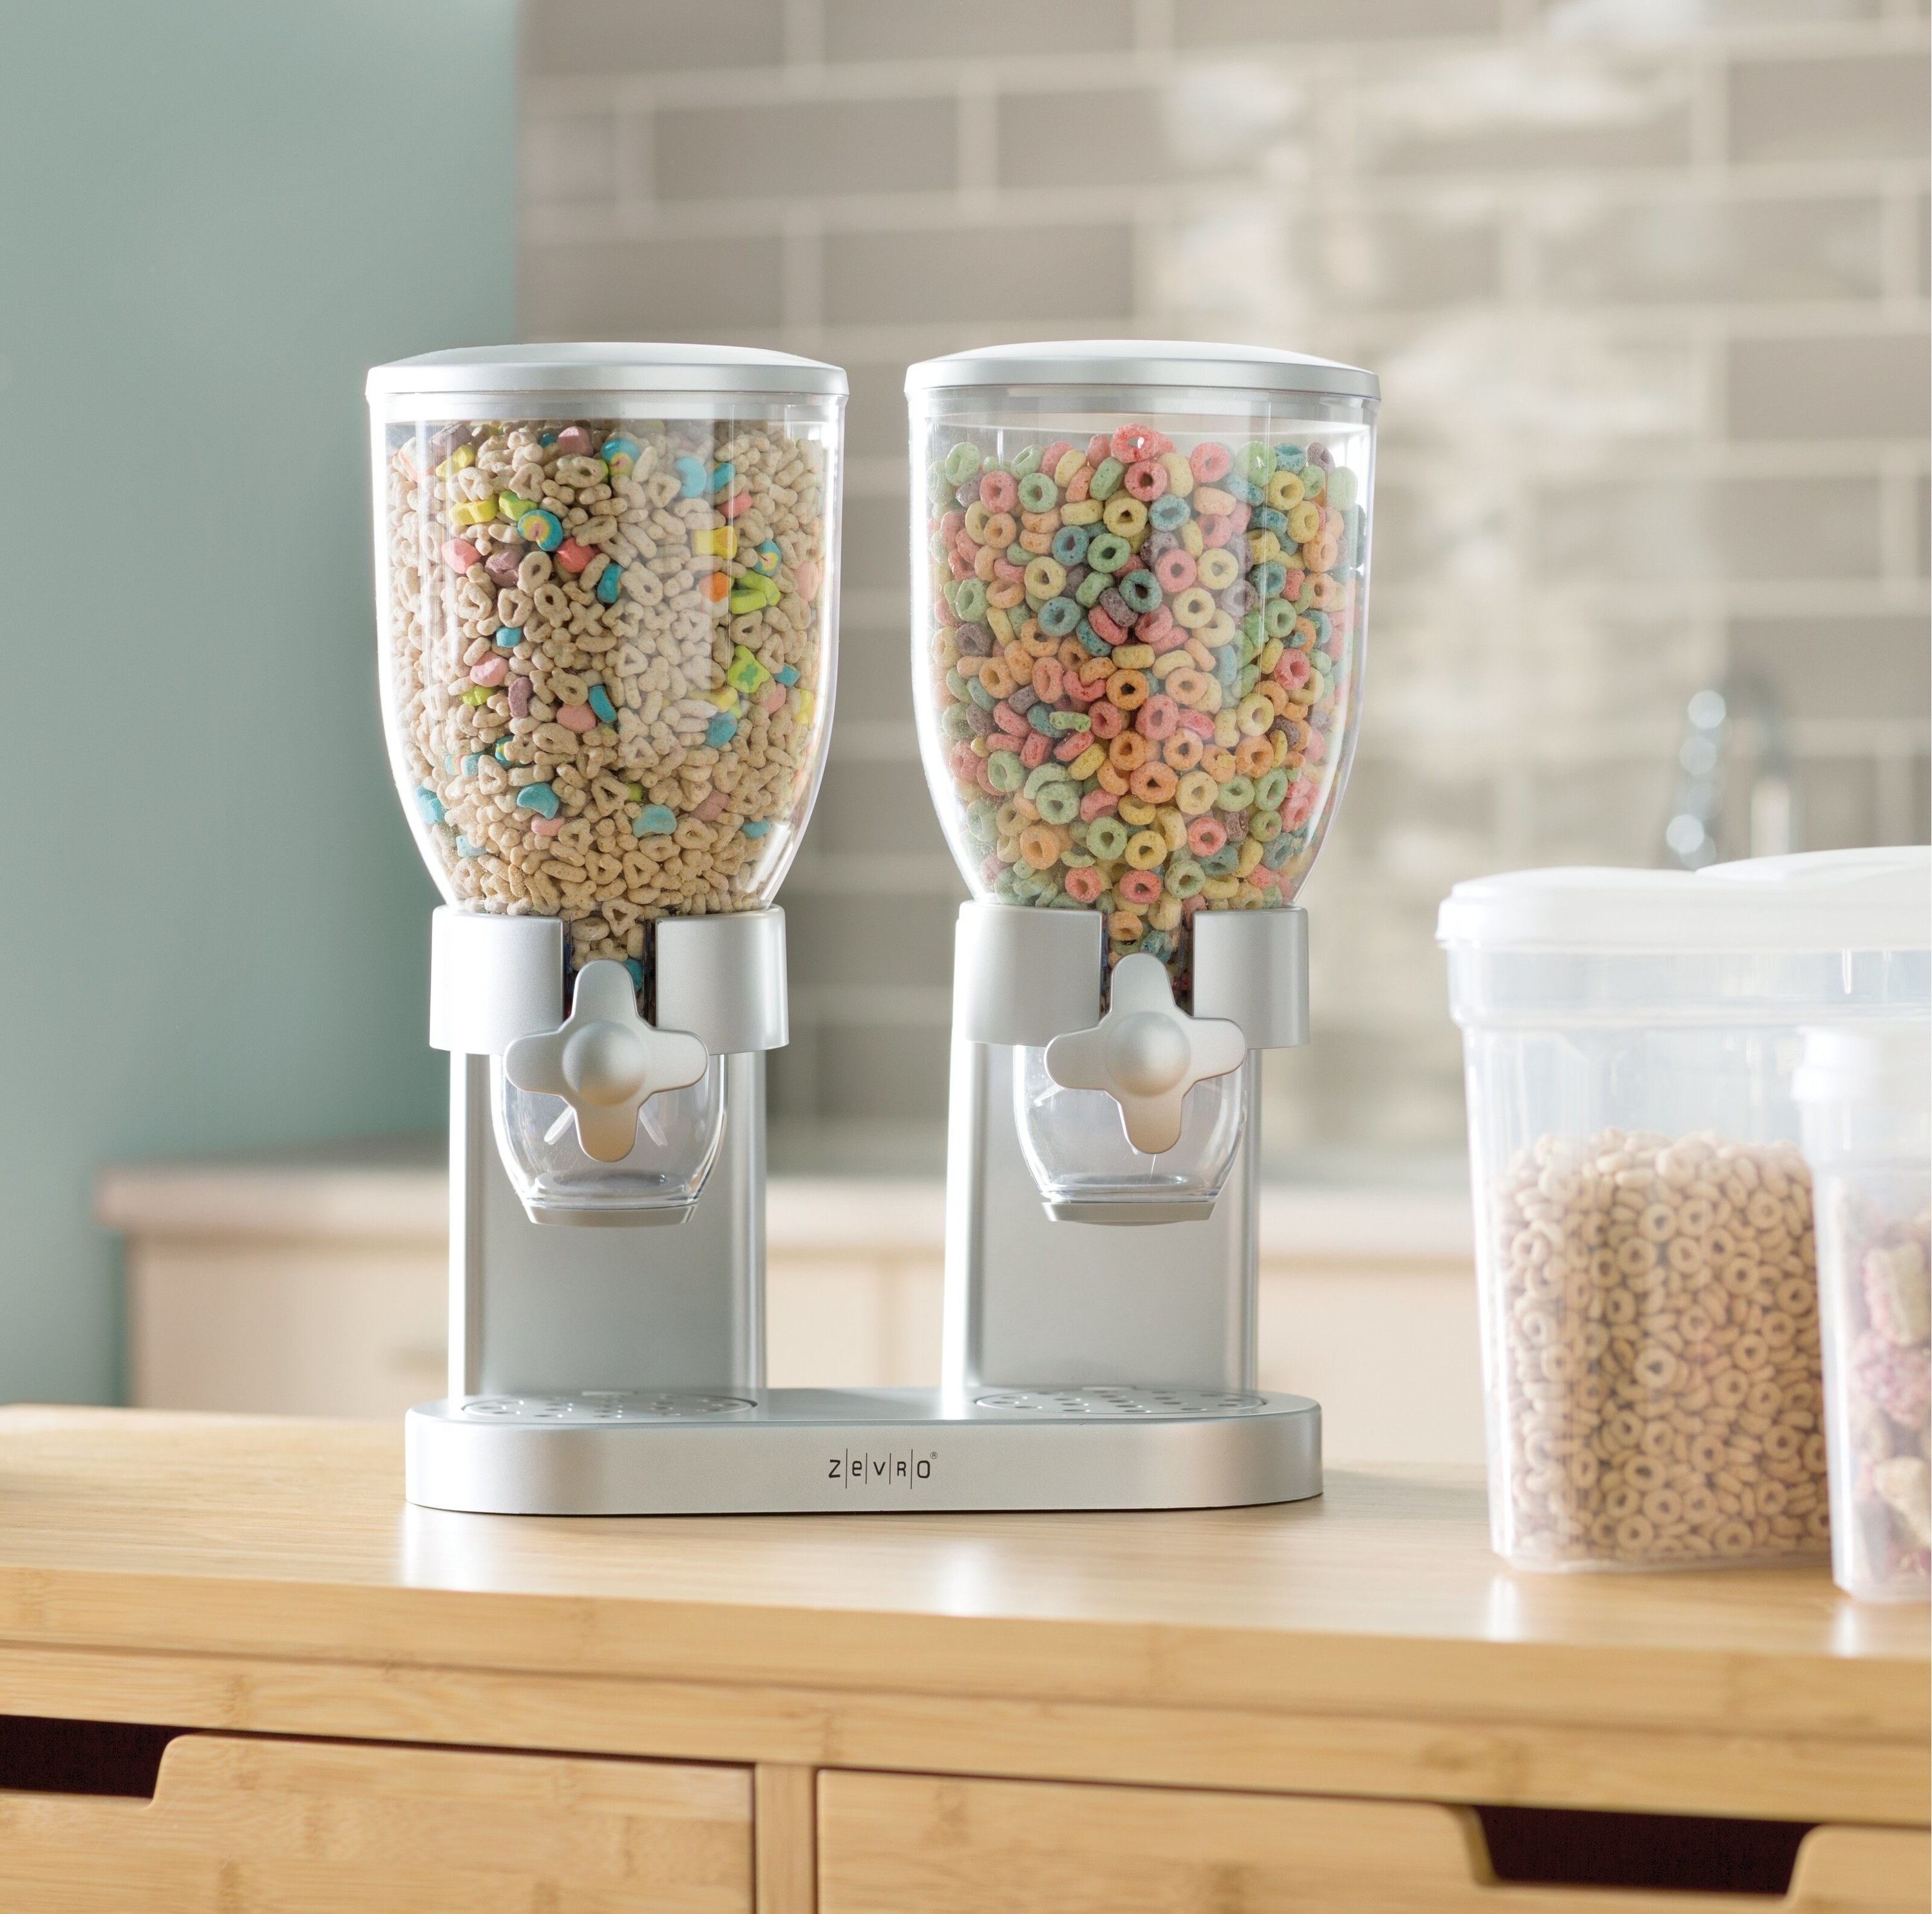 Two silver cereal dispensers with clear storage vessels for the cereal and twist knobs to dispense it